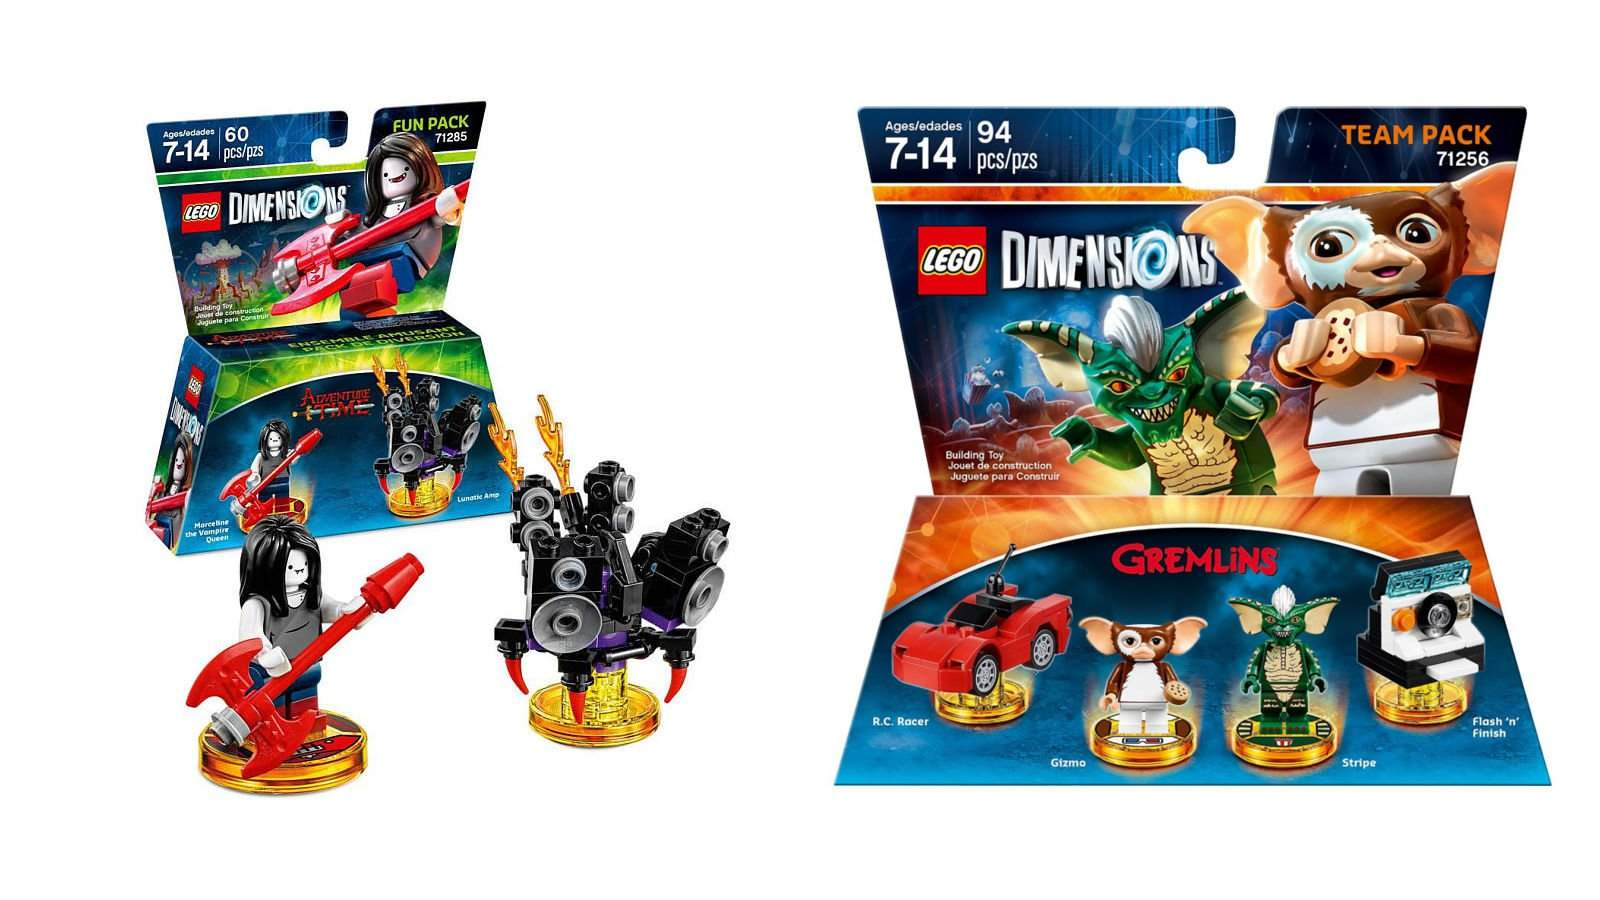 vamers-fyi-video-gaming-wave-7-of-lego-dimensions-just-released-02